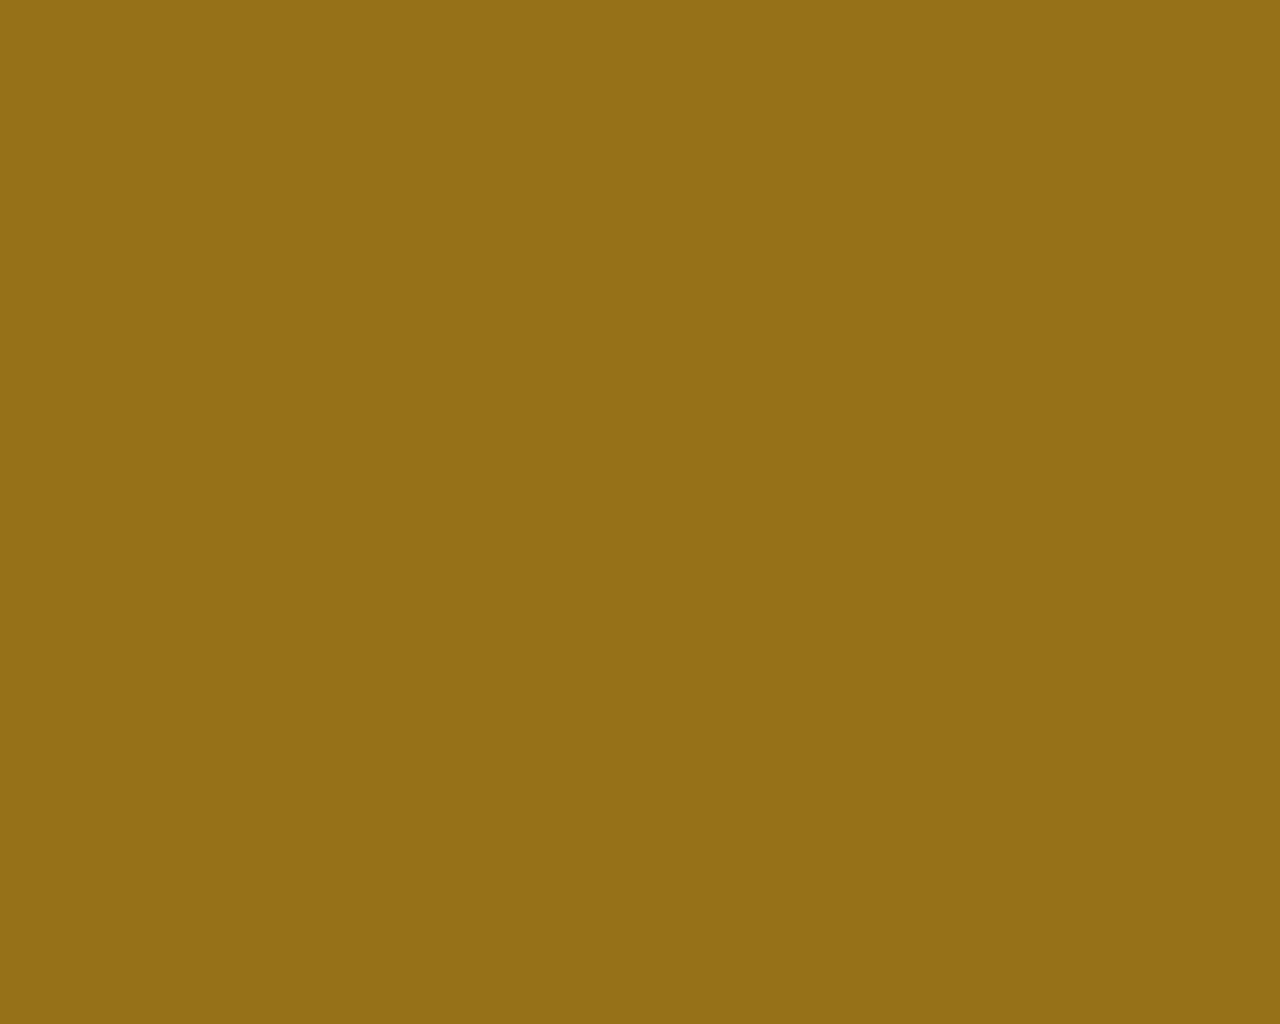 1280x1024 Sandy Taupe Solid Color Background